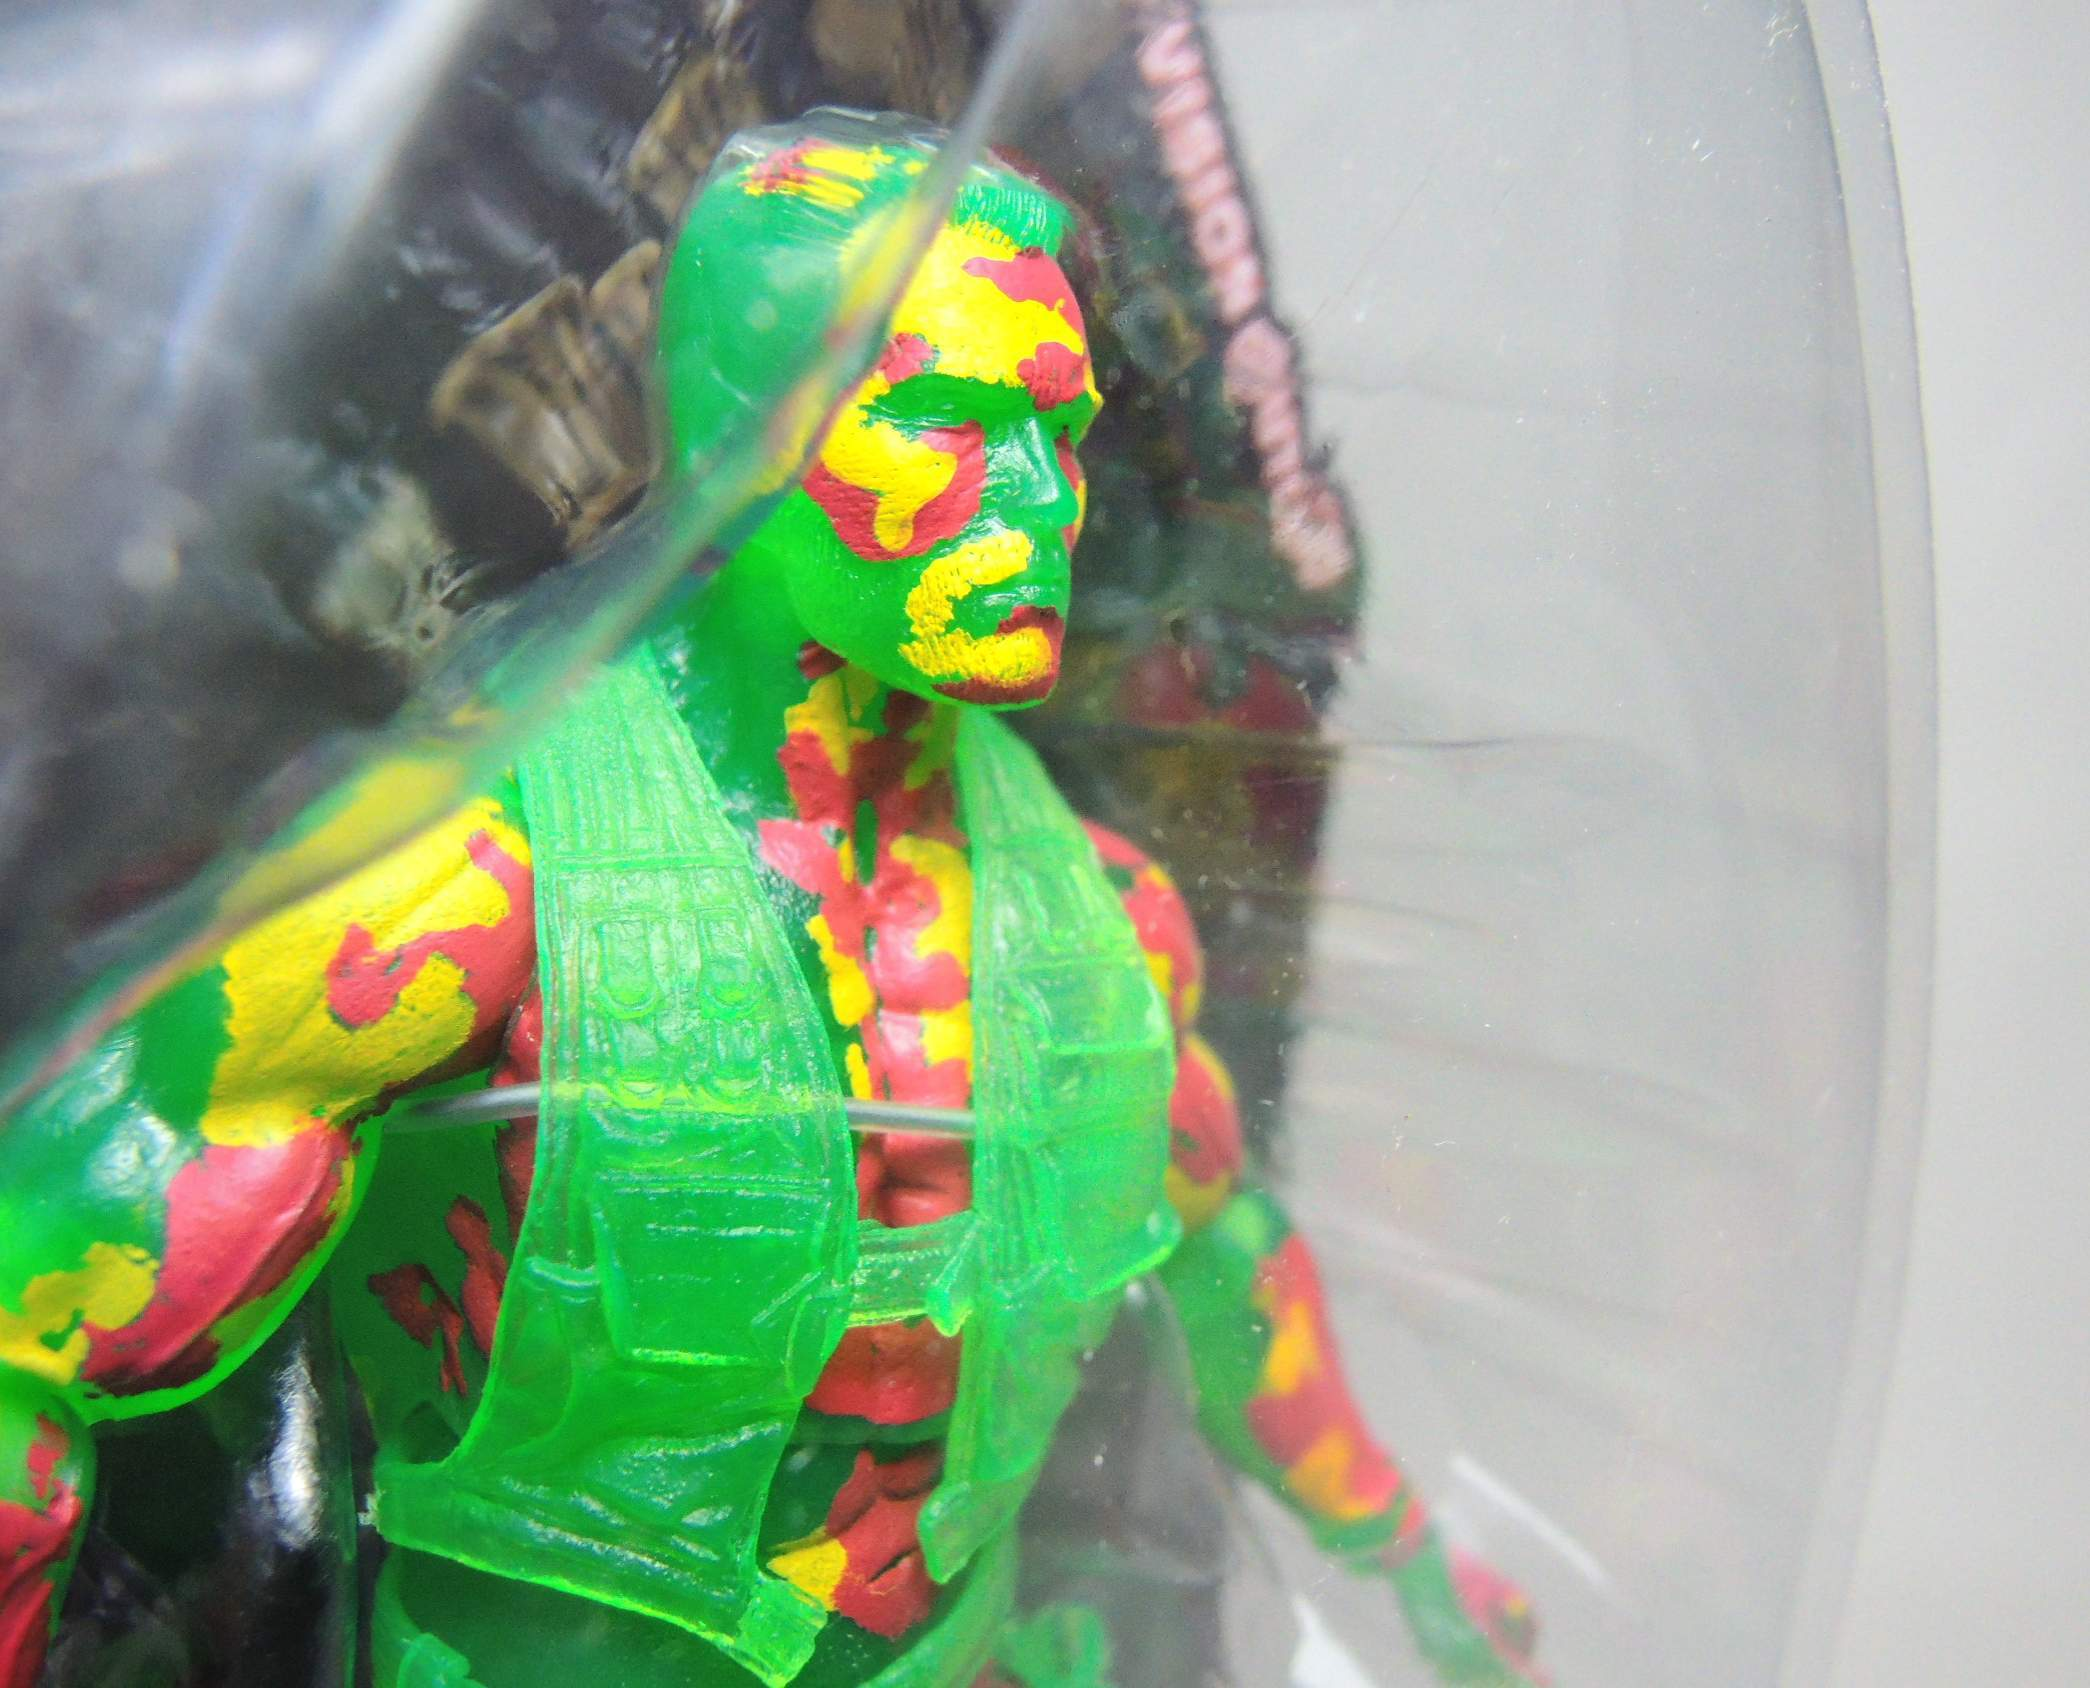 NECA Predator Series 11 - Thermal Vision Dutch 7 inch figure - 7221-7232CCVVHF